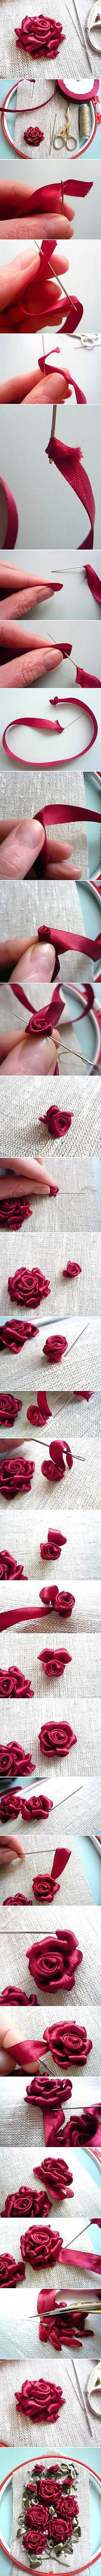 "......""a rose is a rose"".....and this one is exceptional! the picture tutorial is very inspiring, too. it makes me want to create a few....in soft shades of pinks, yellows, etc....."